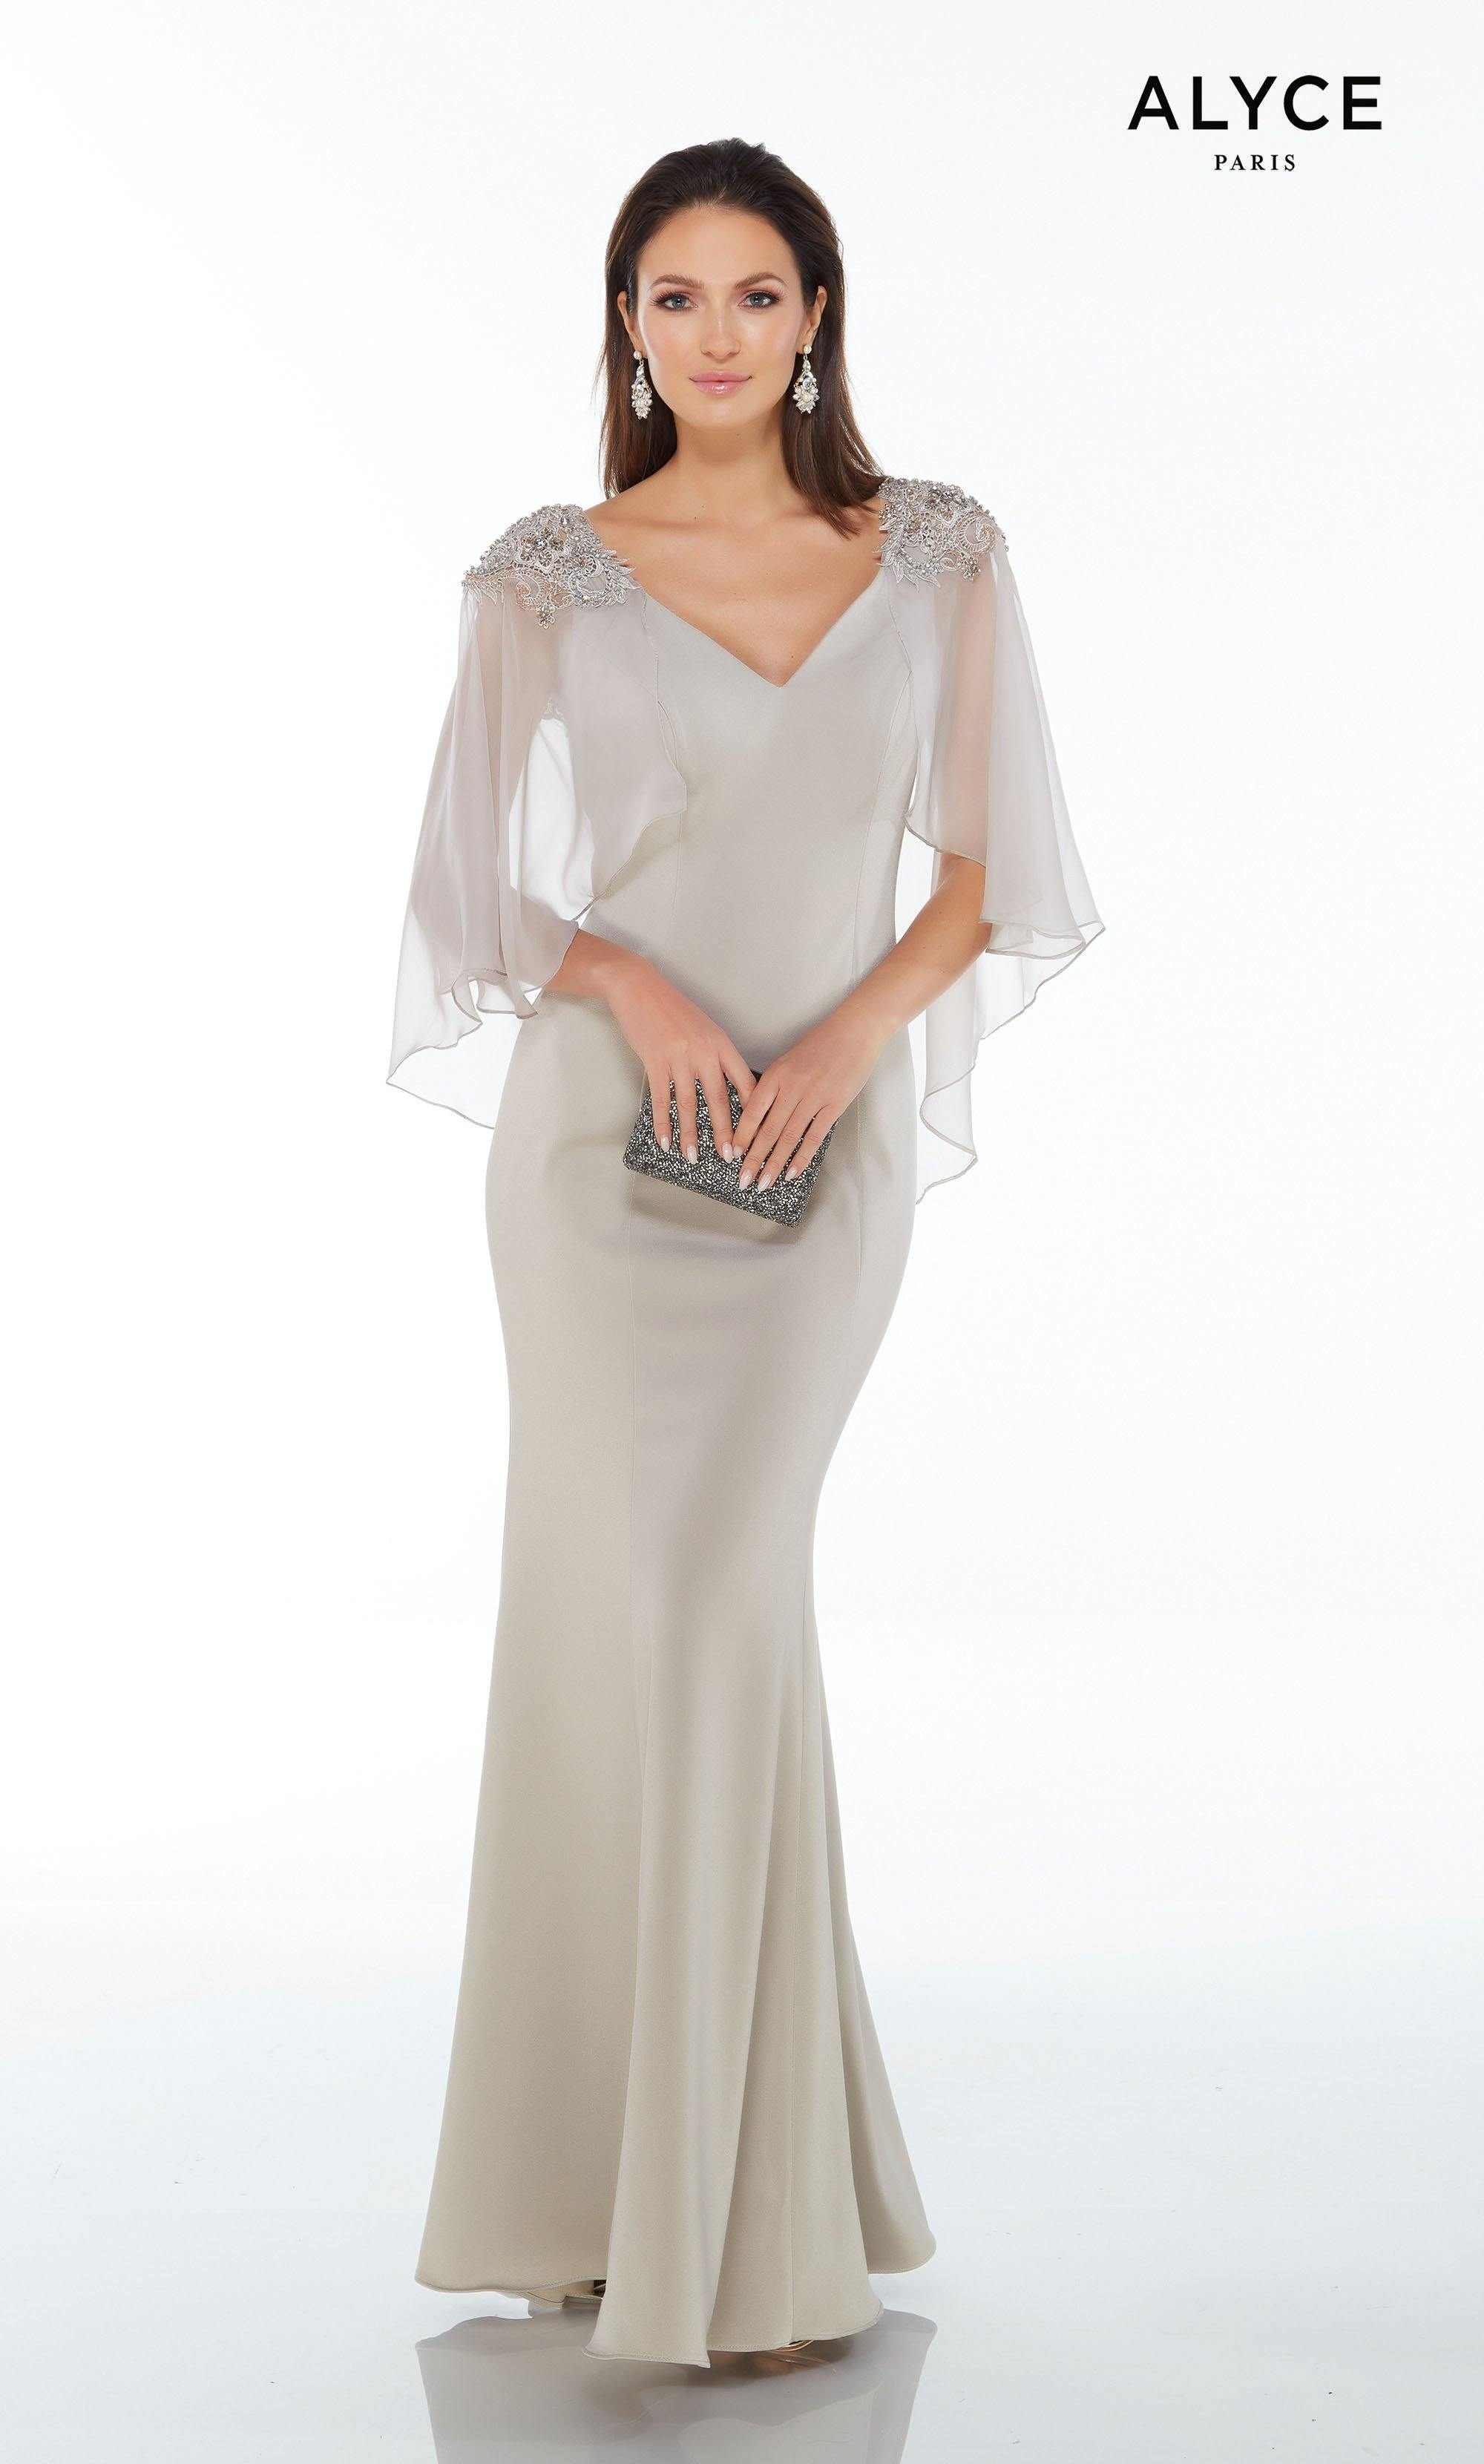 Silver stretch crepe dress with a V-neckline, flowy chiffon sleeves and beading on the shoulder and throughout the V-shaped back